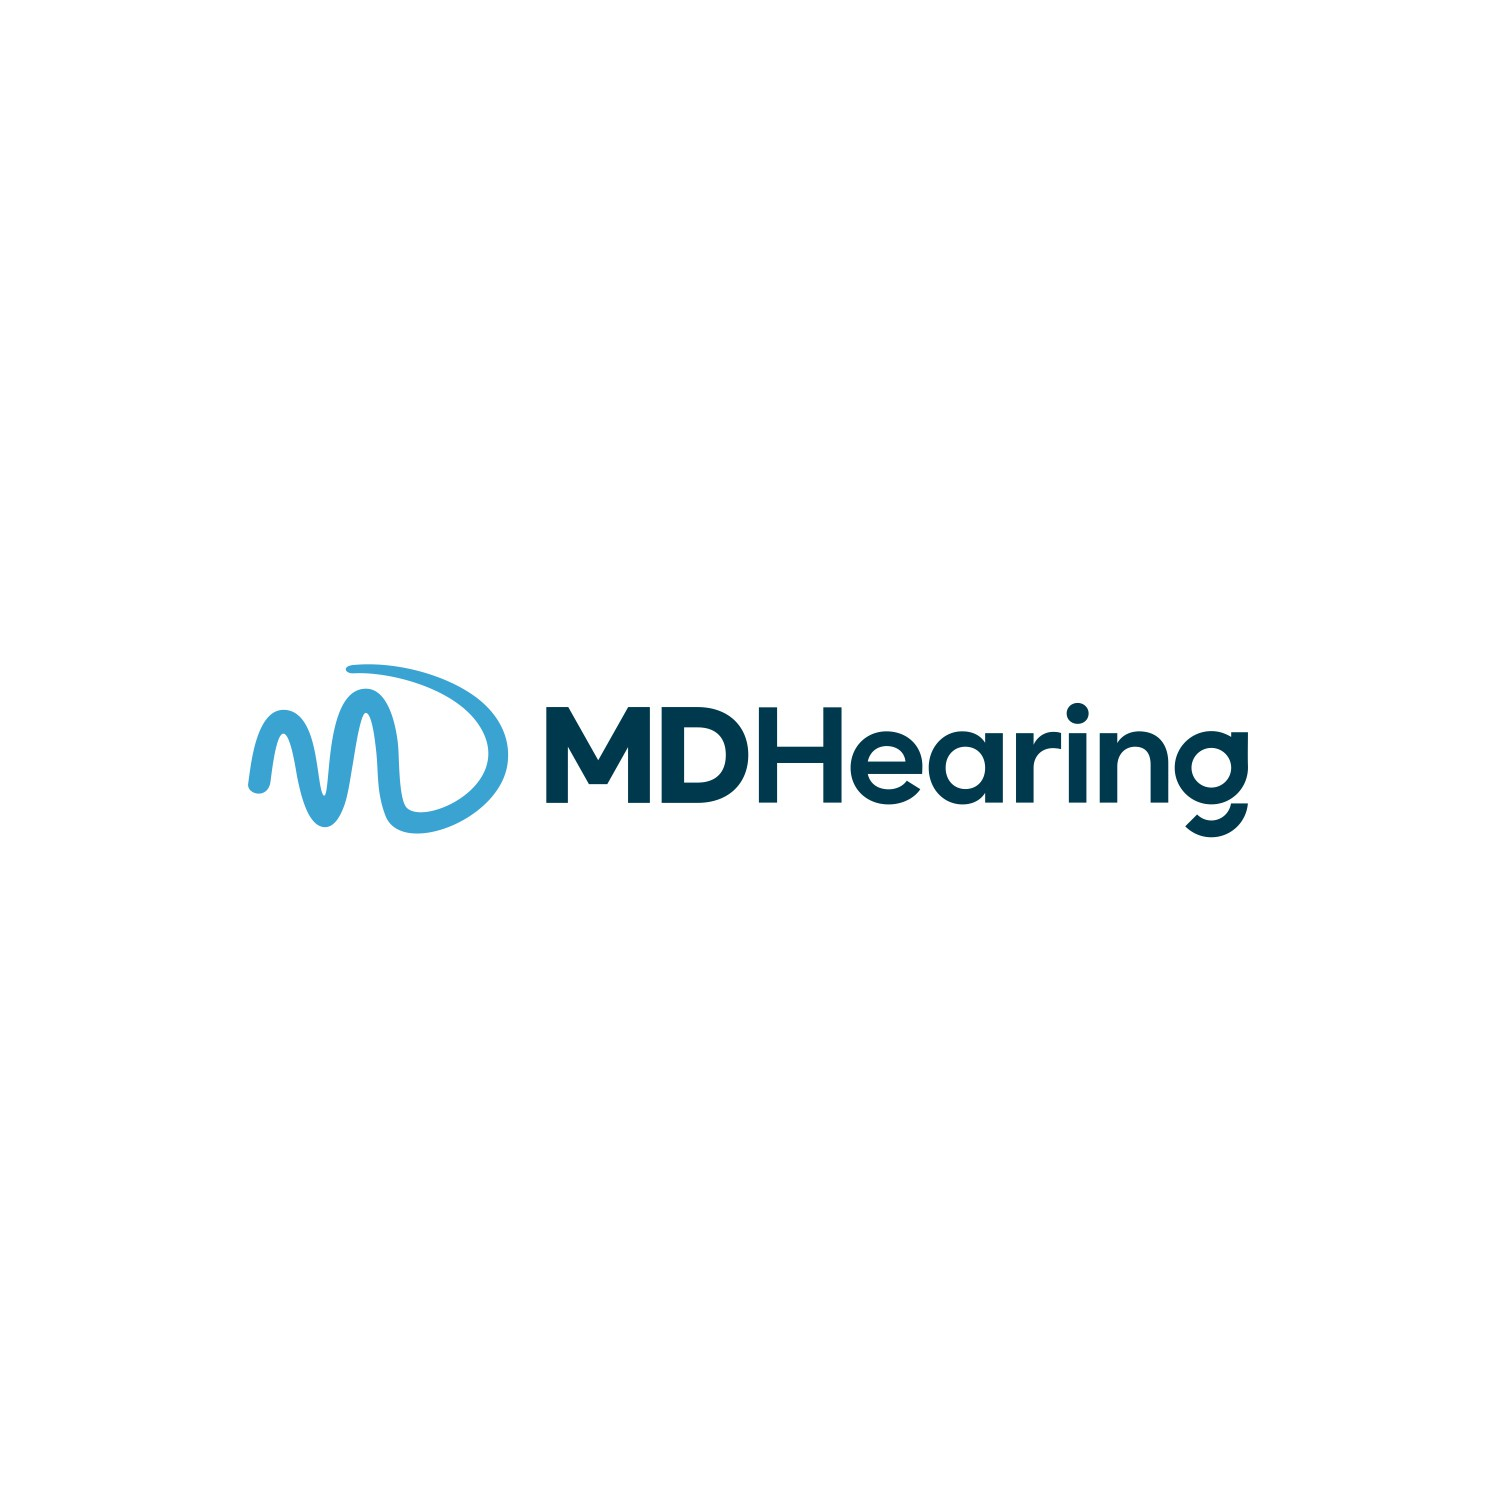 Logo- MDHearing (product high quality hearing aids for seniors)